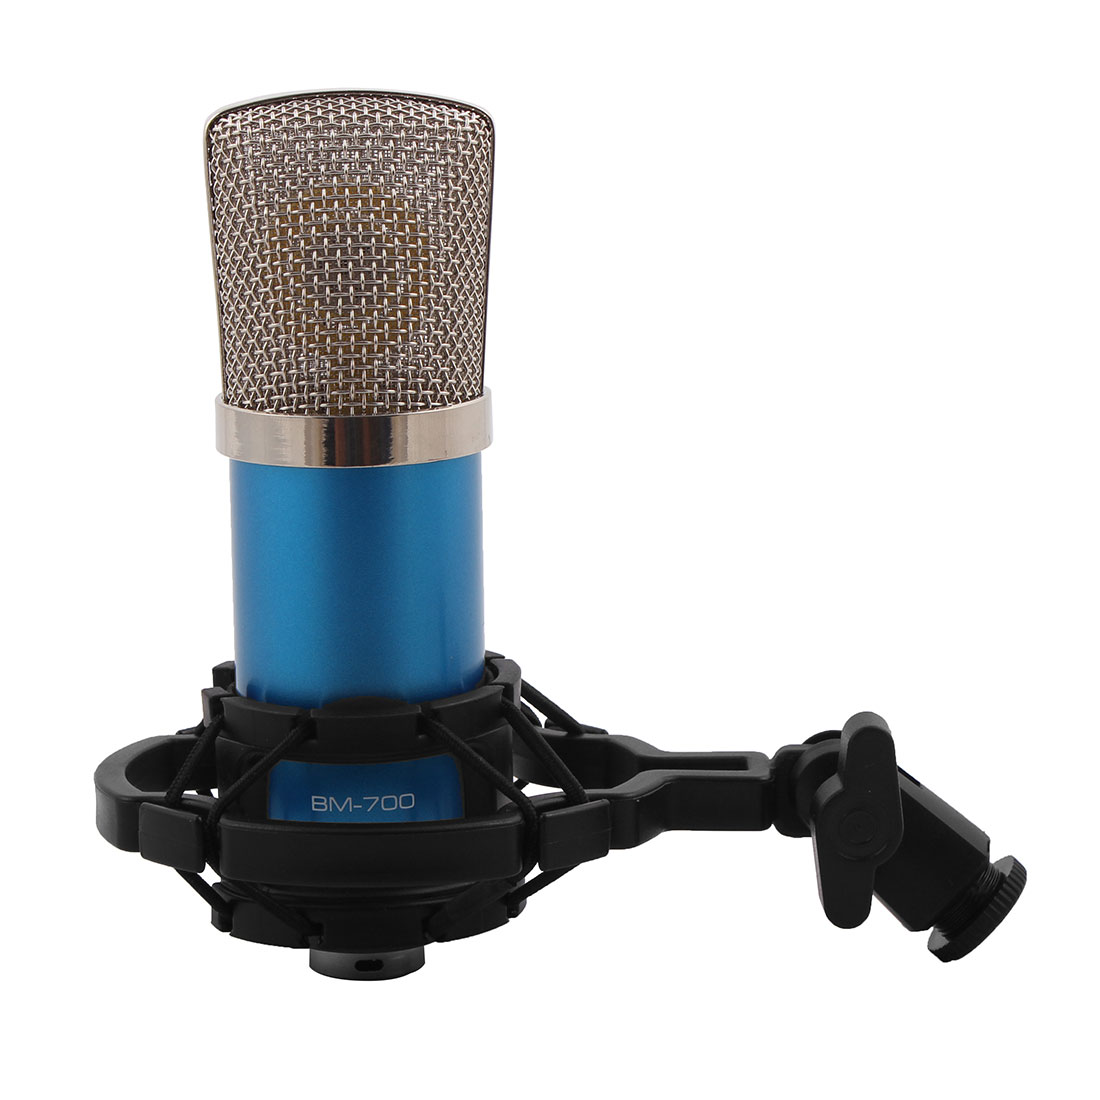 BM-700 3.5mm Wired Sound Recording Microphone Blue for KTV Singing